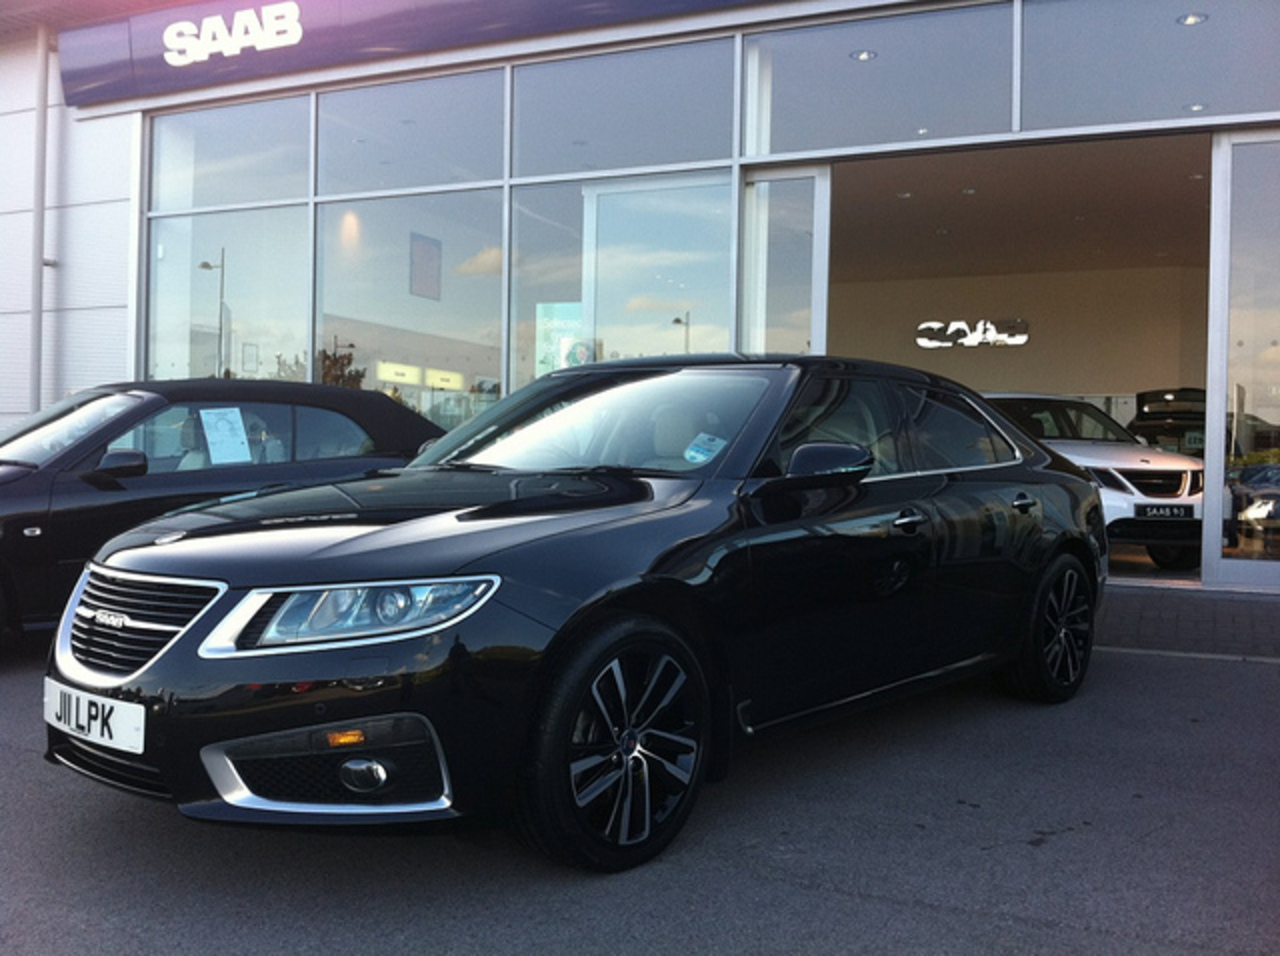 New Saab 9-5 (2) - a gallery on Flickr